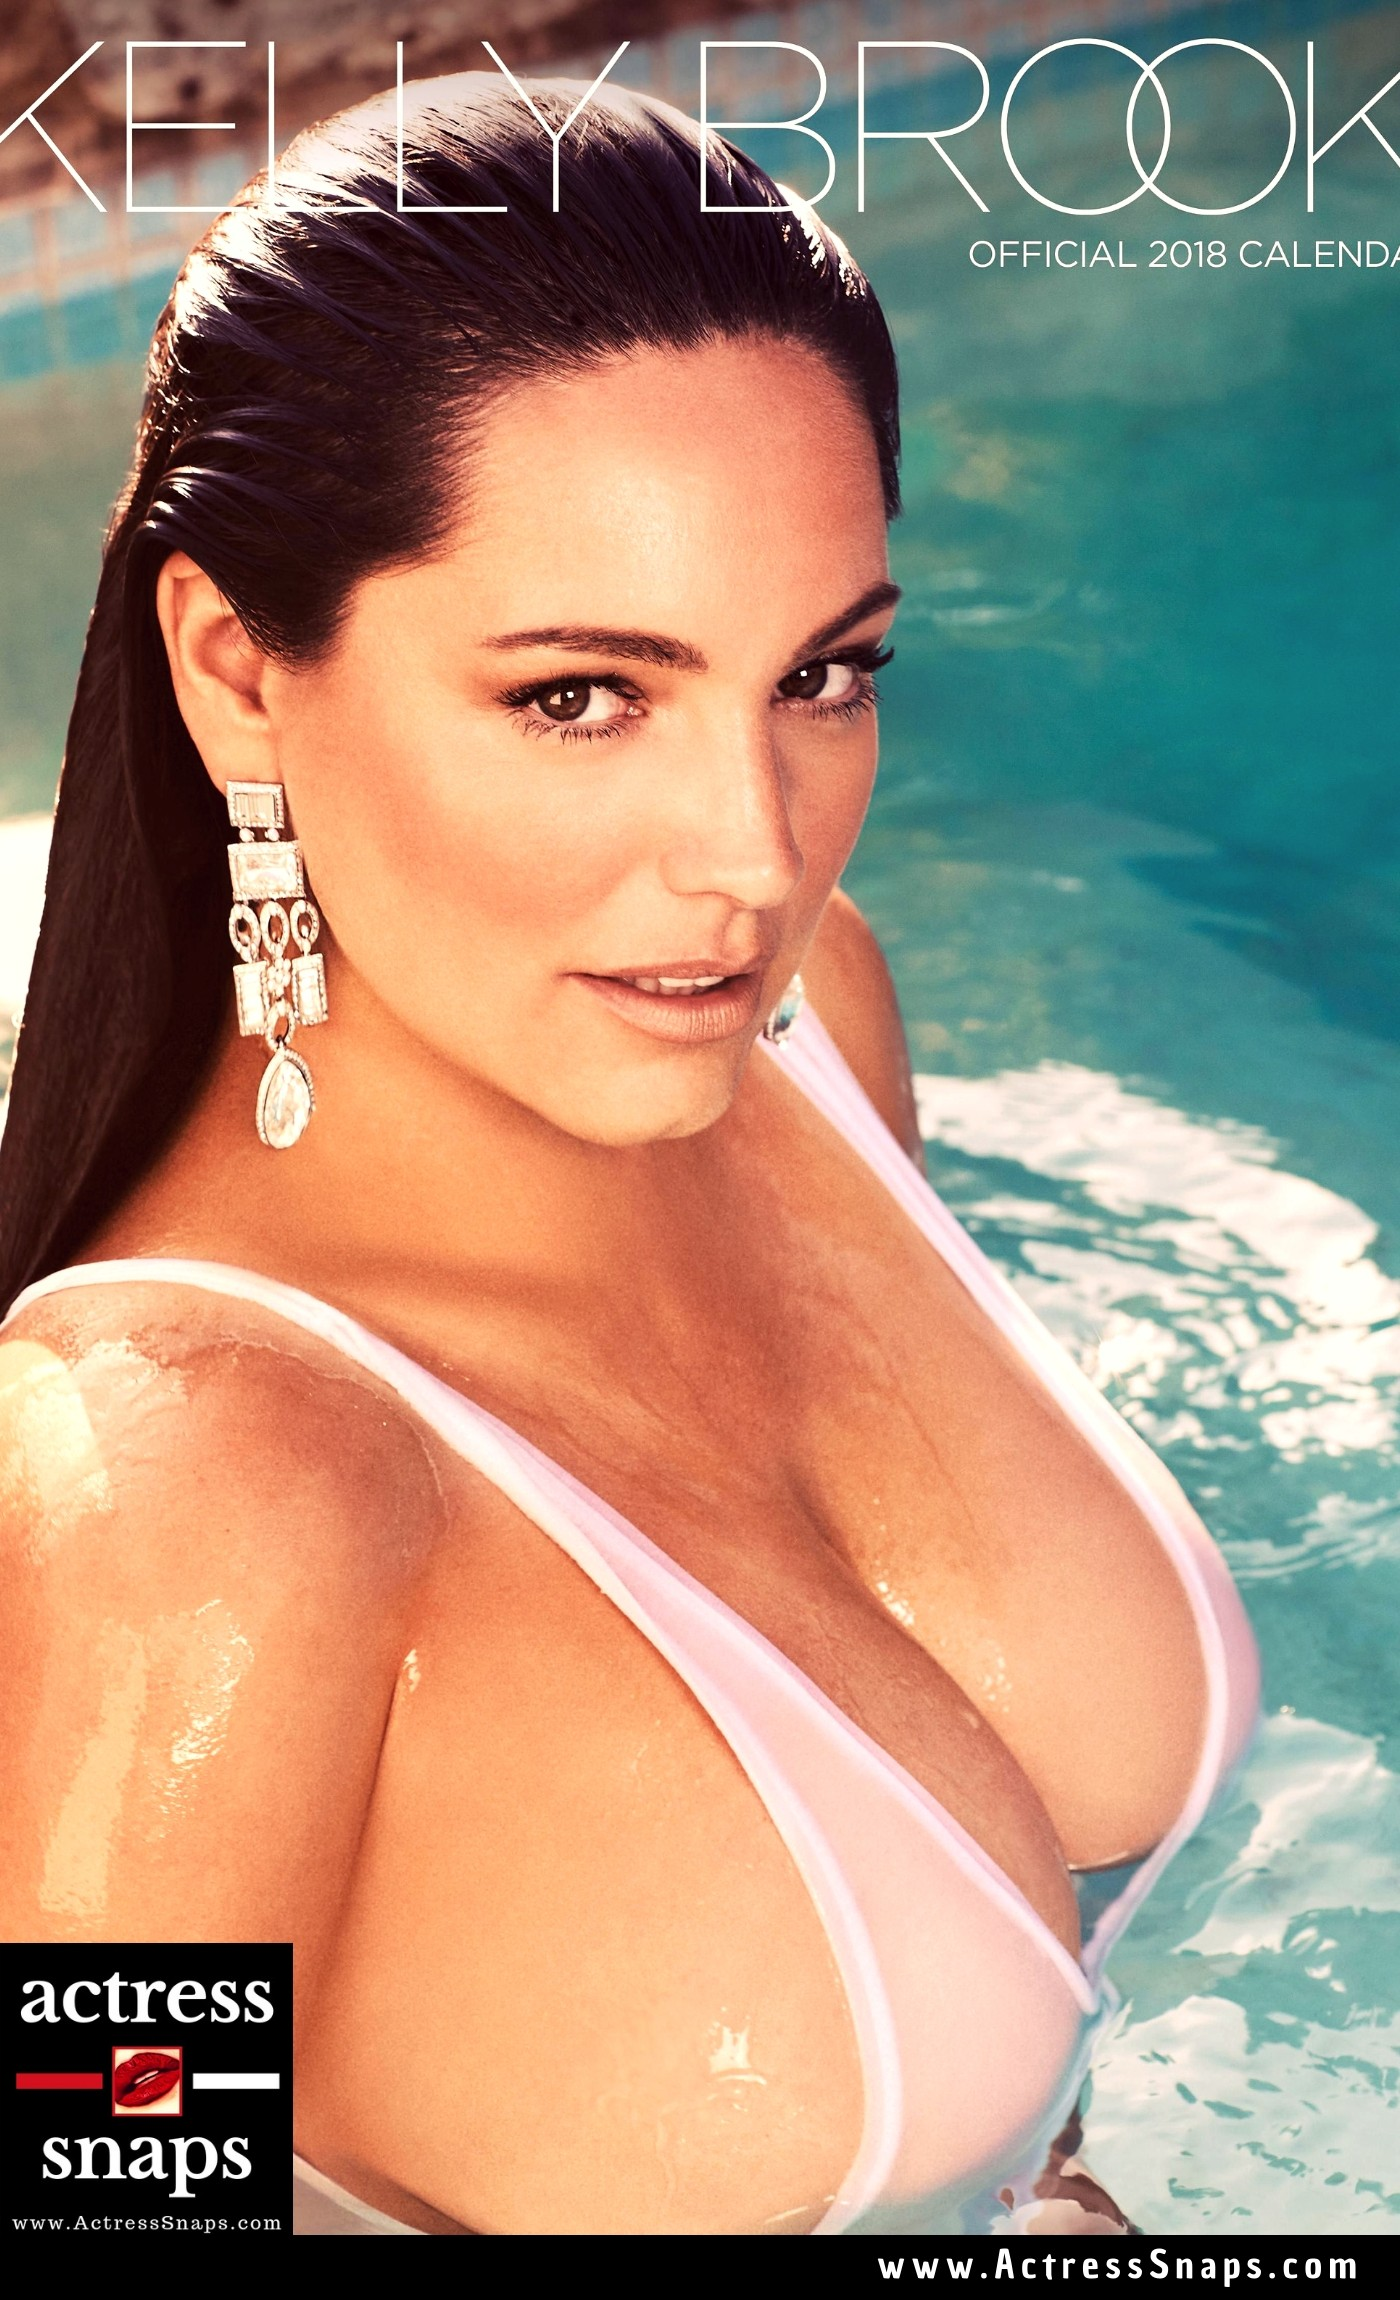 Sexy Kelly Brook 2018 Calender Photos - Sexy Actress Pictures | Hot Actress Pictures - ActressSnaps.com